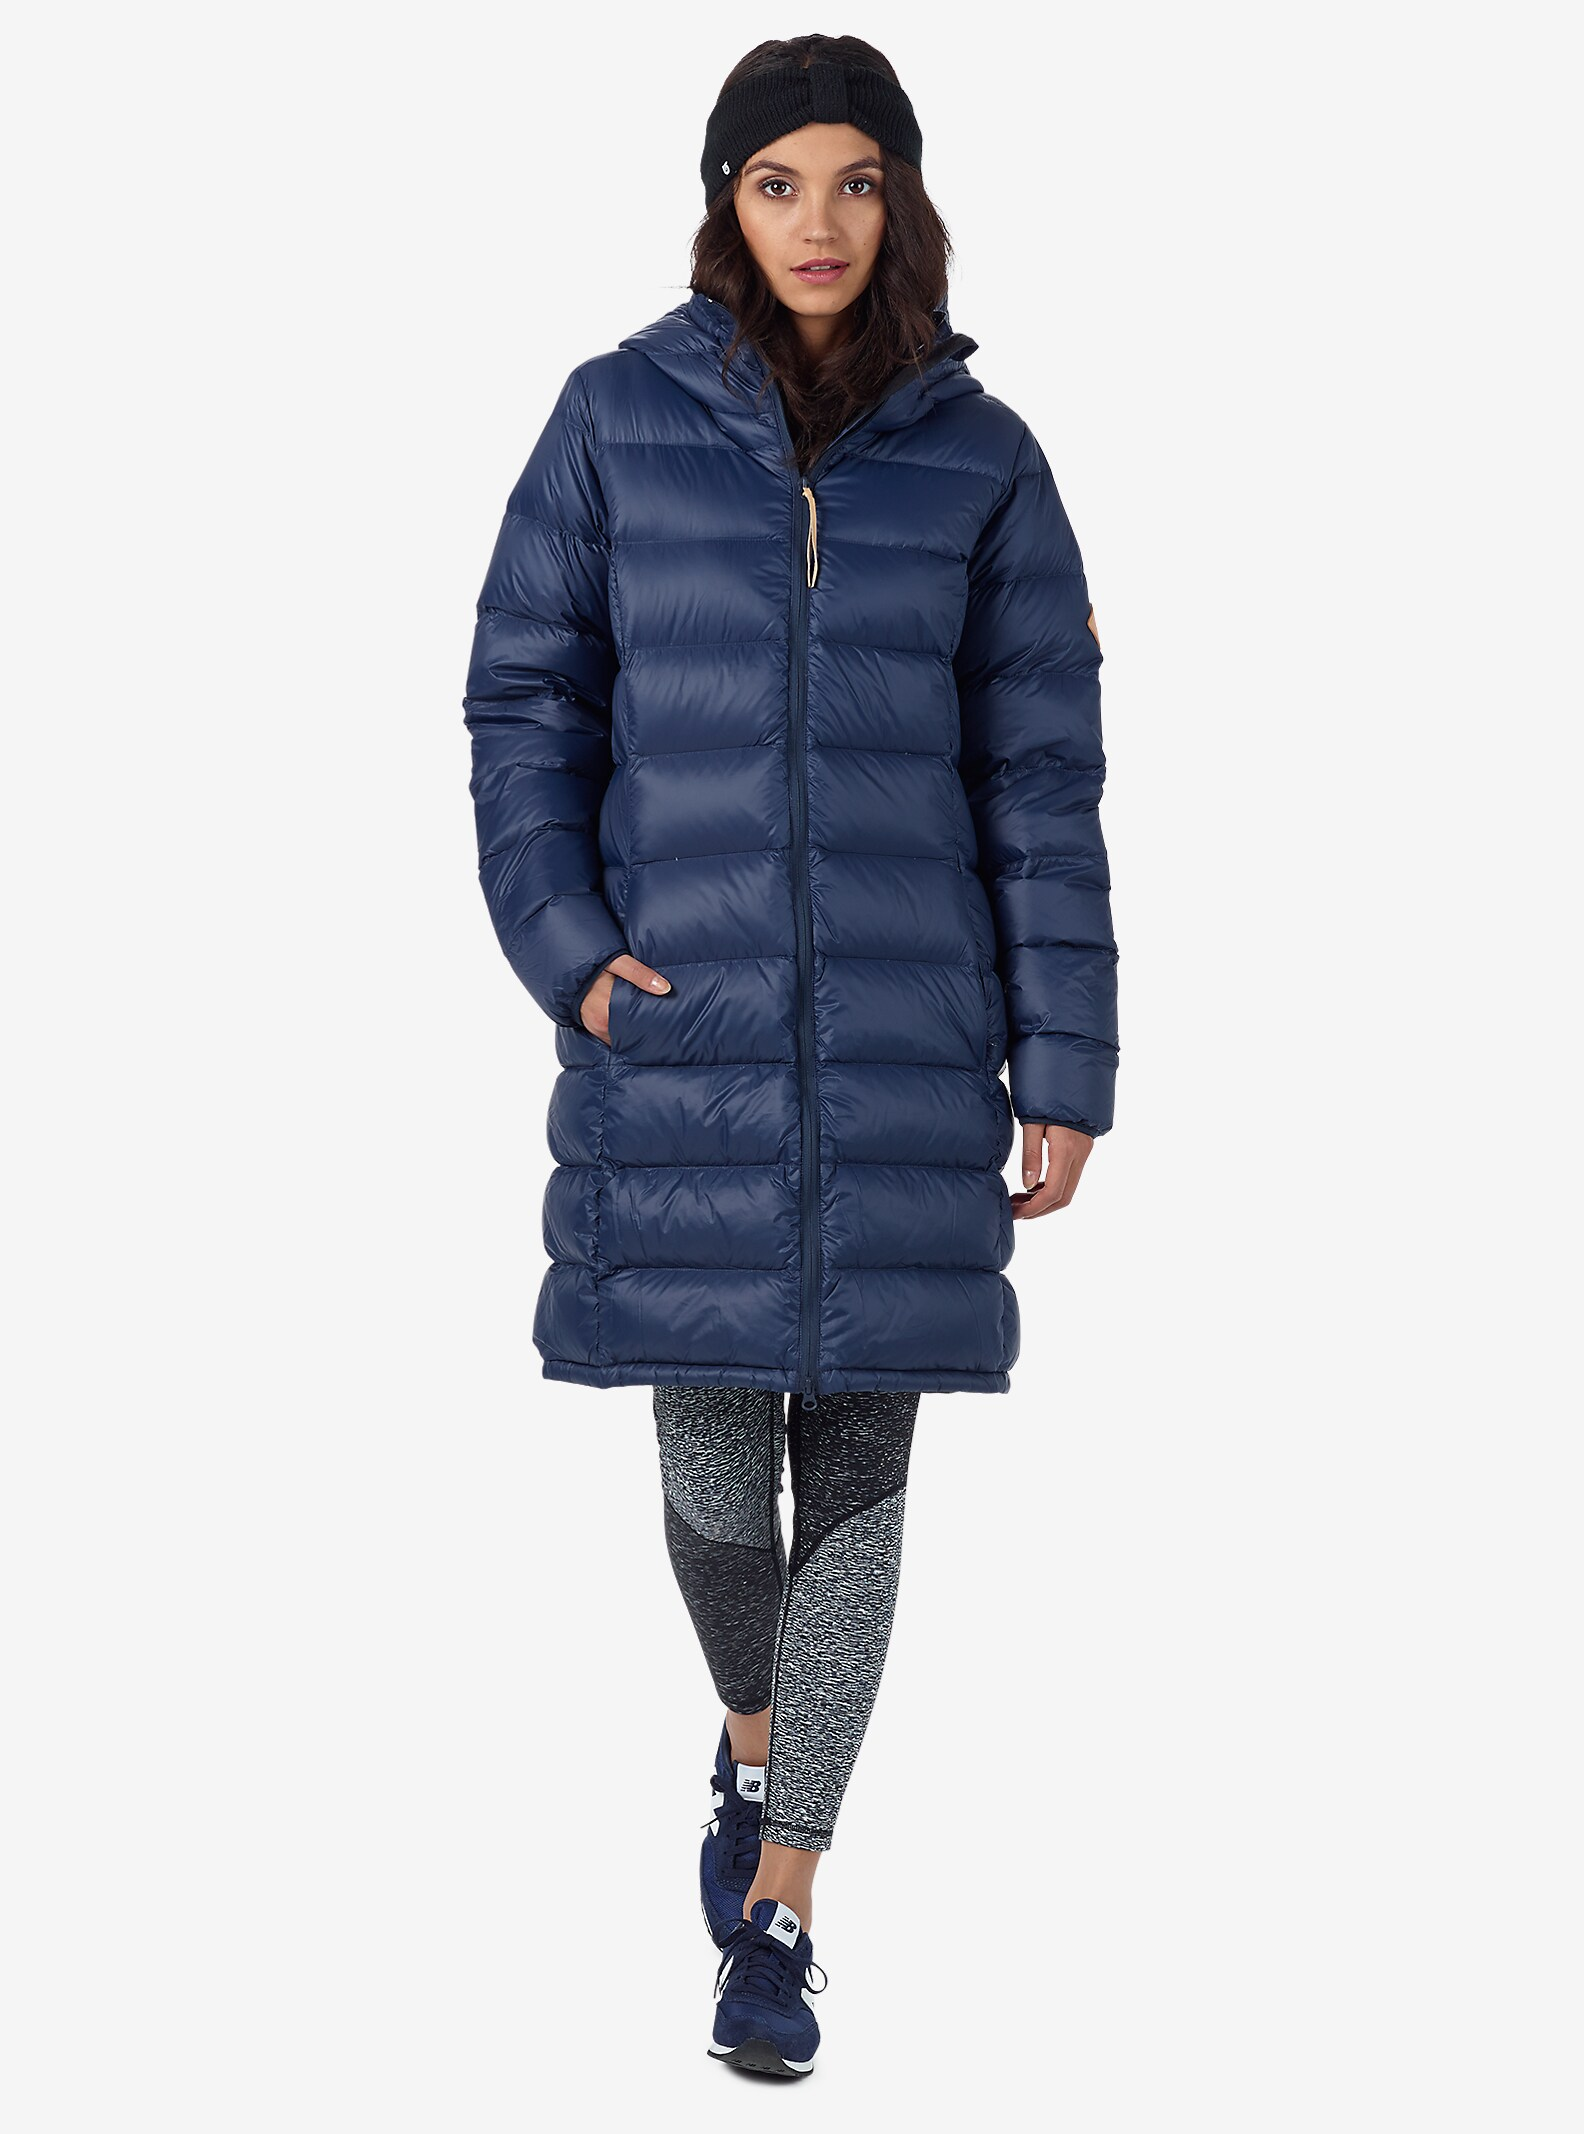 Burton Women's Evergreen Hooded Long Down Insulator shown in Mood Indigo